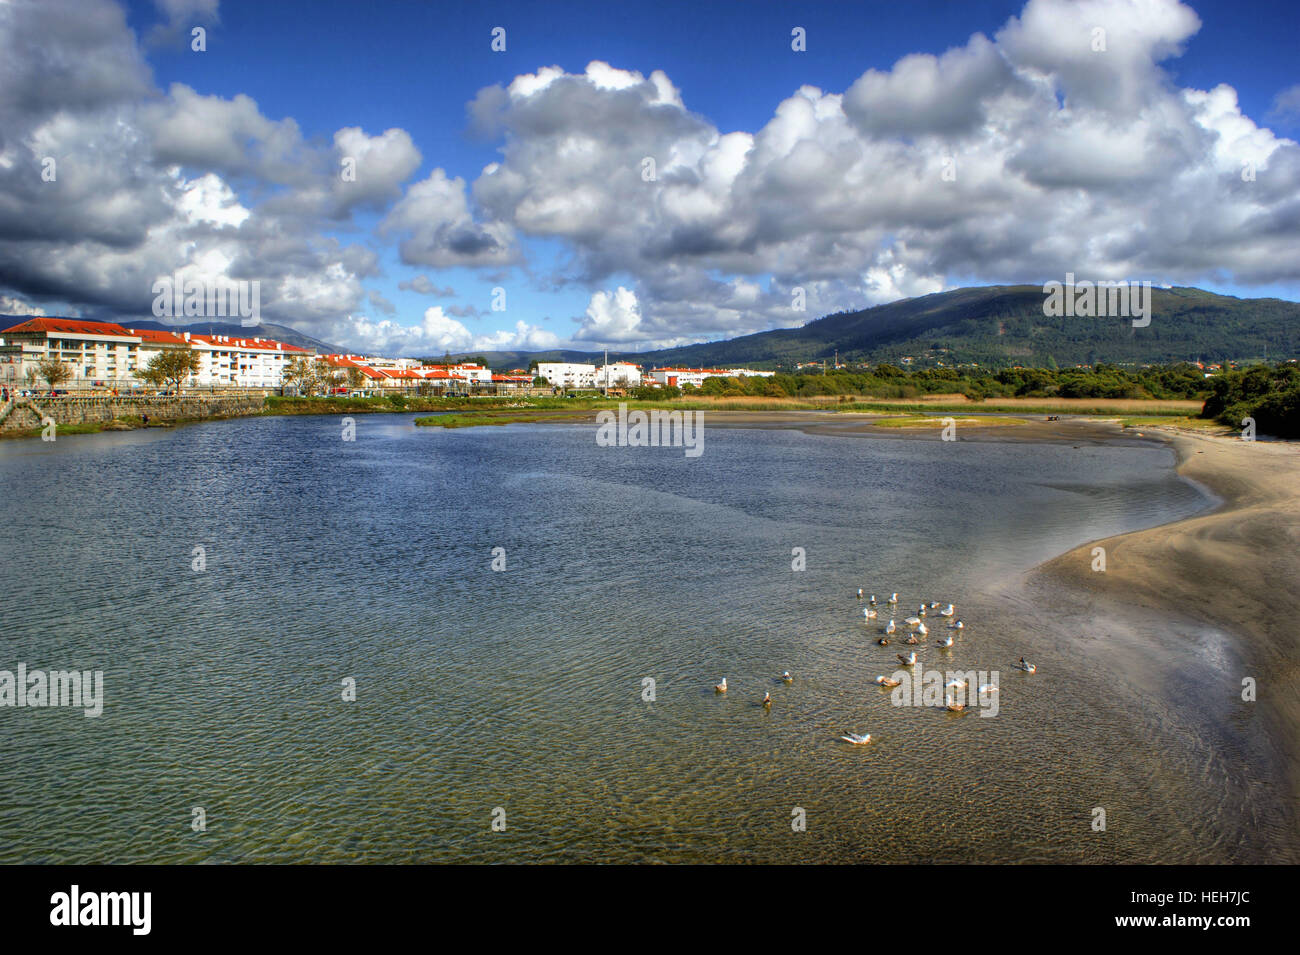 River scenery in Vila Praia de Ancora, north of Portugal - Stock Image